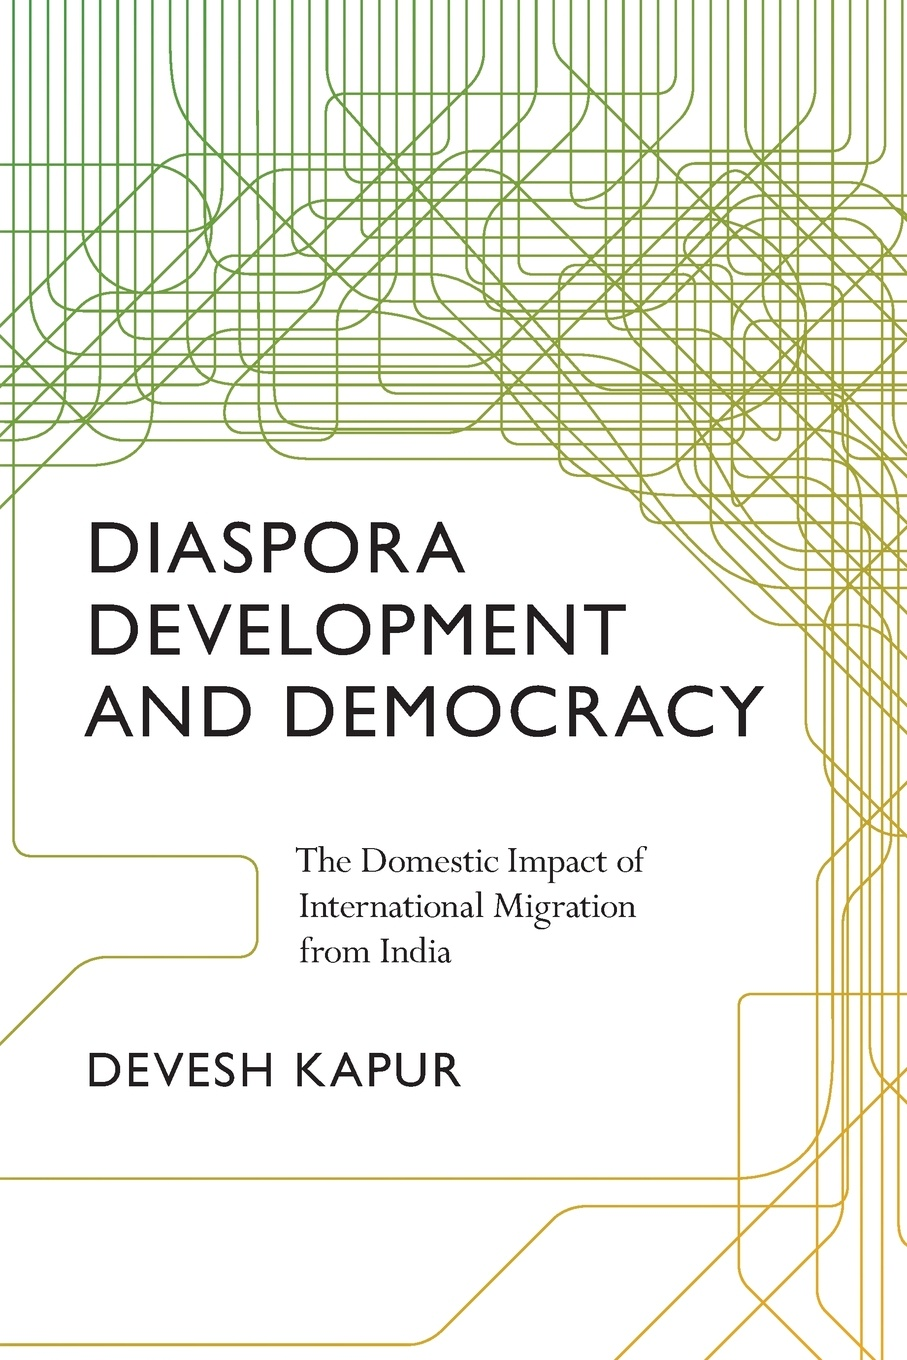 Devesh Kapur Diaspora, Development, and Democracy. The Domestic Impact of International Migration from India advancing democracy through education u s influence abroad and domestic practices pb